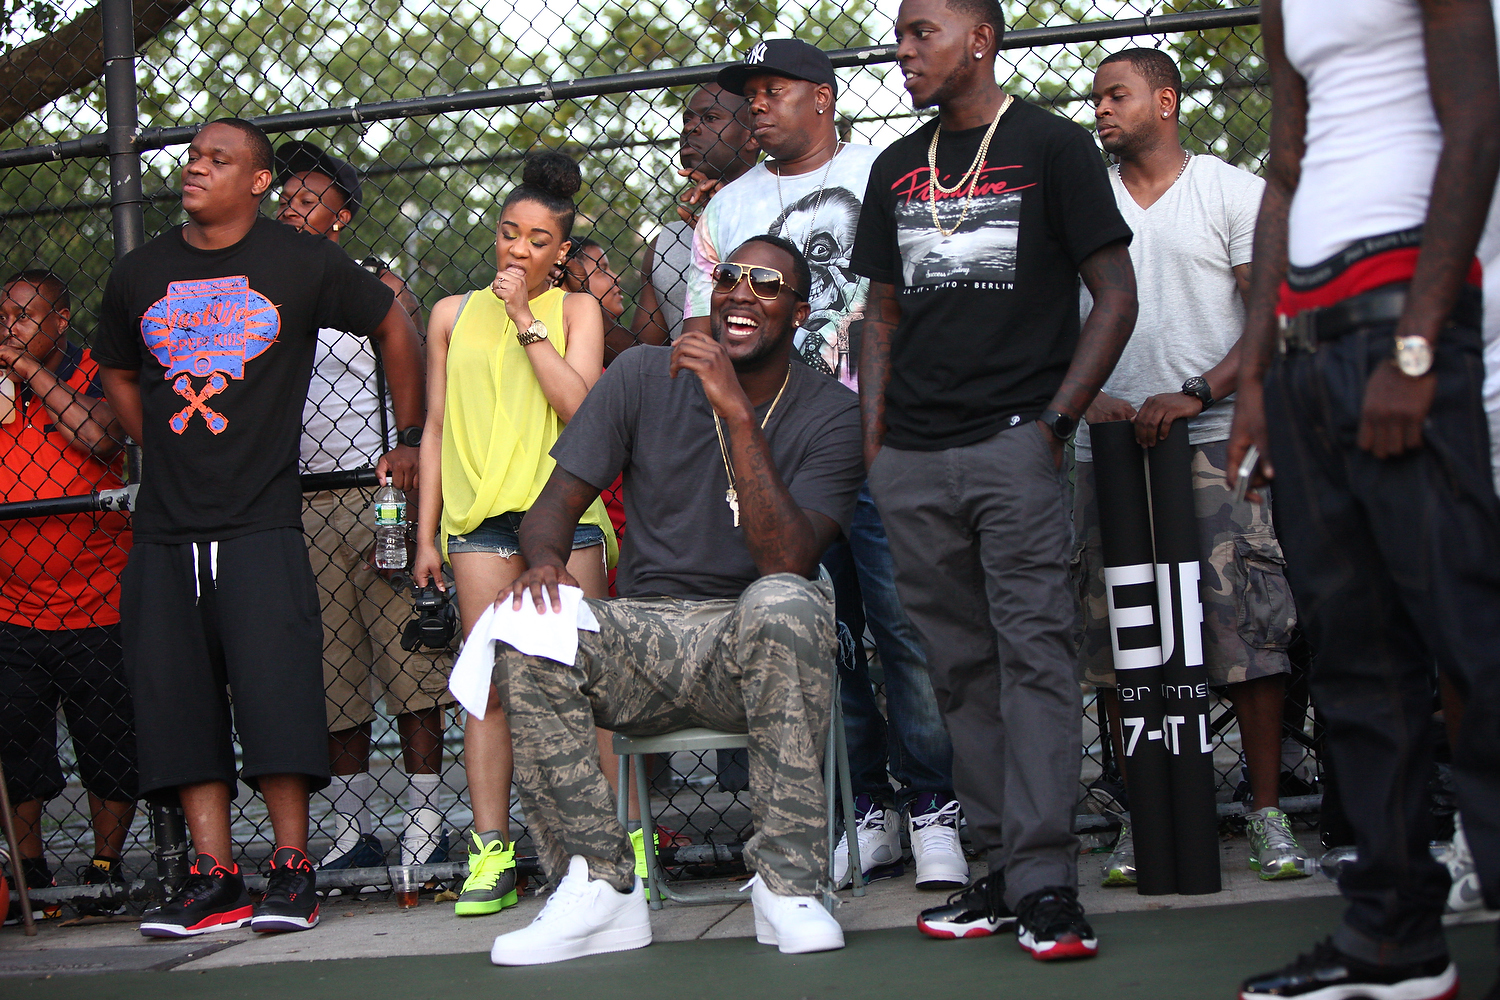 Arndray Blatche of the Brooklyn Nets came out and supported Gersh from the sidelines as he took in the high-energy atmosphere.